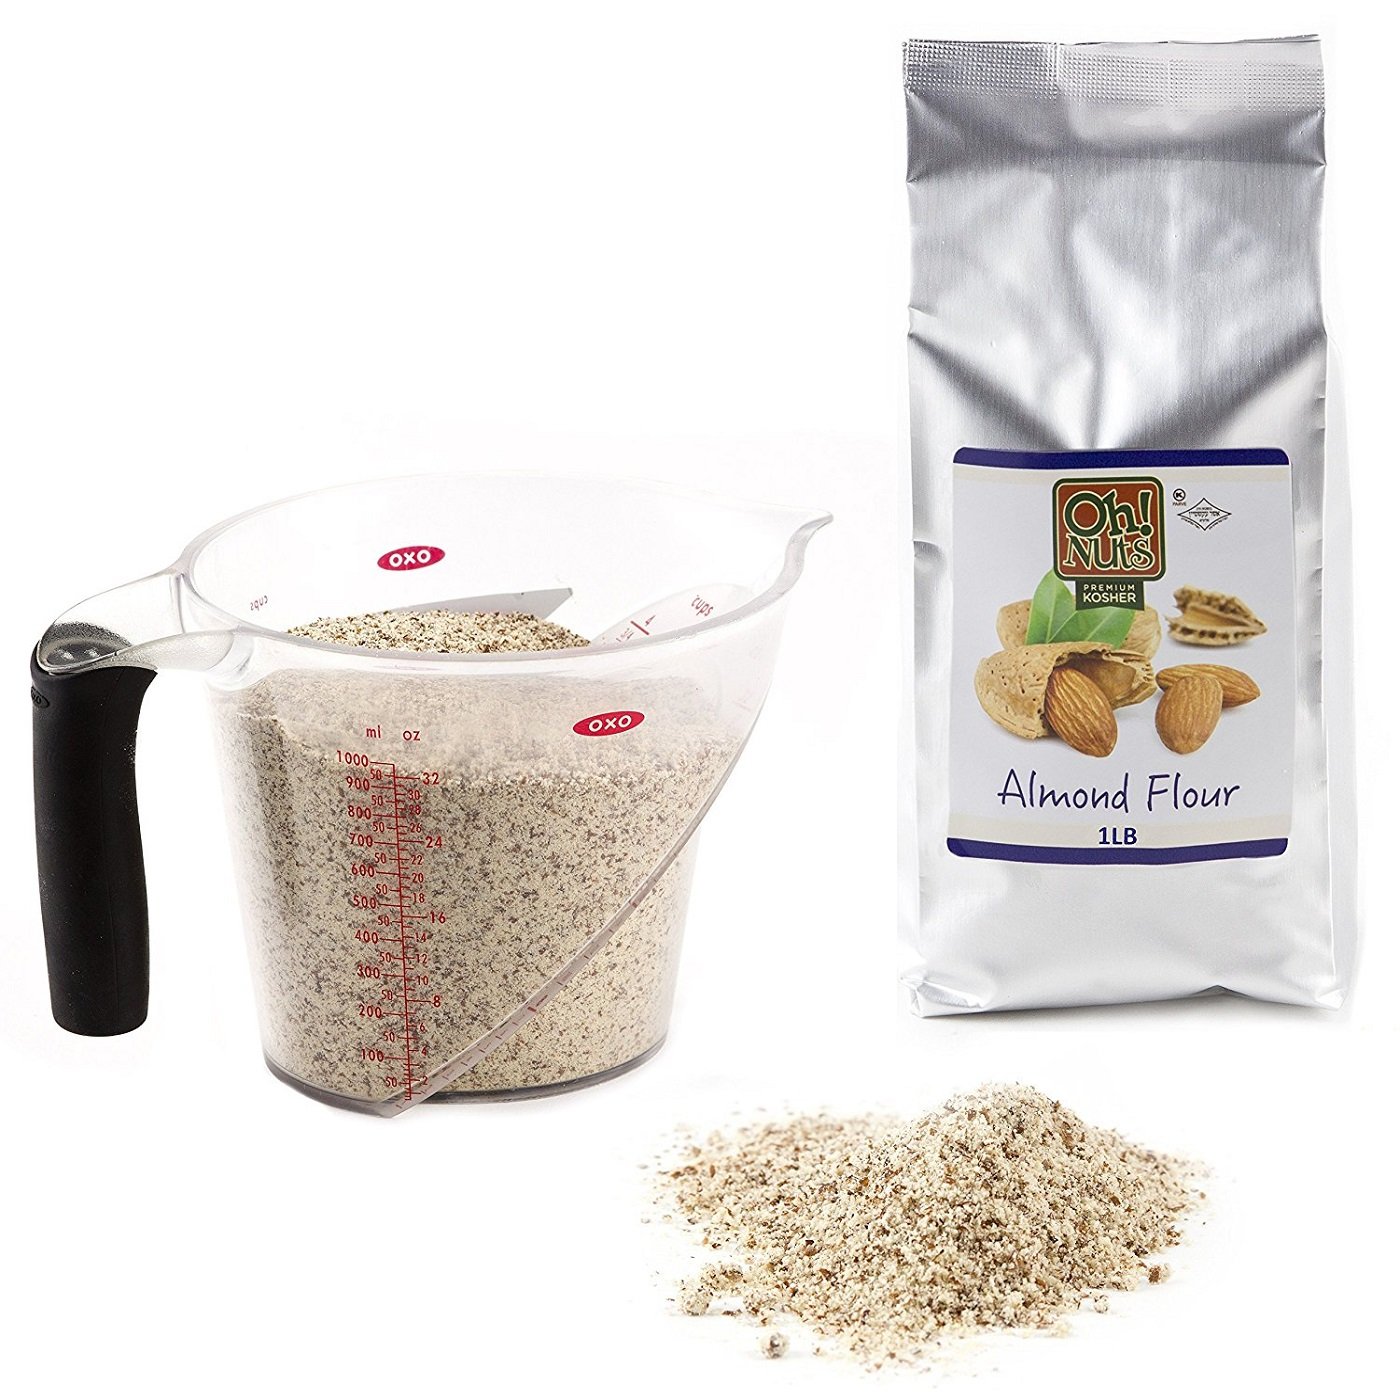 Oh! Nuts Ground Natural Almond Flour